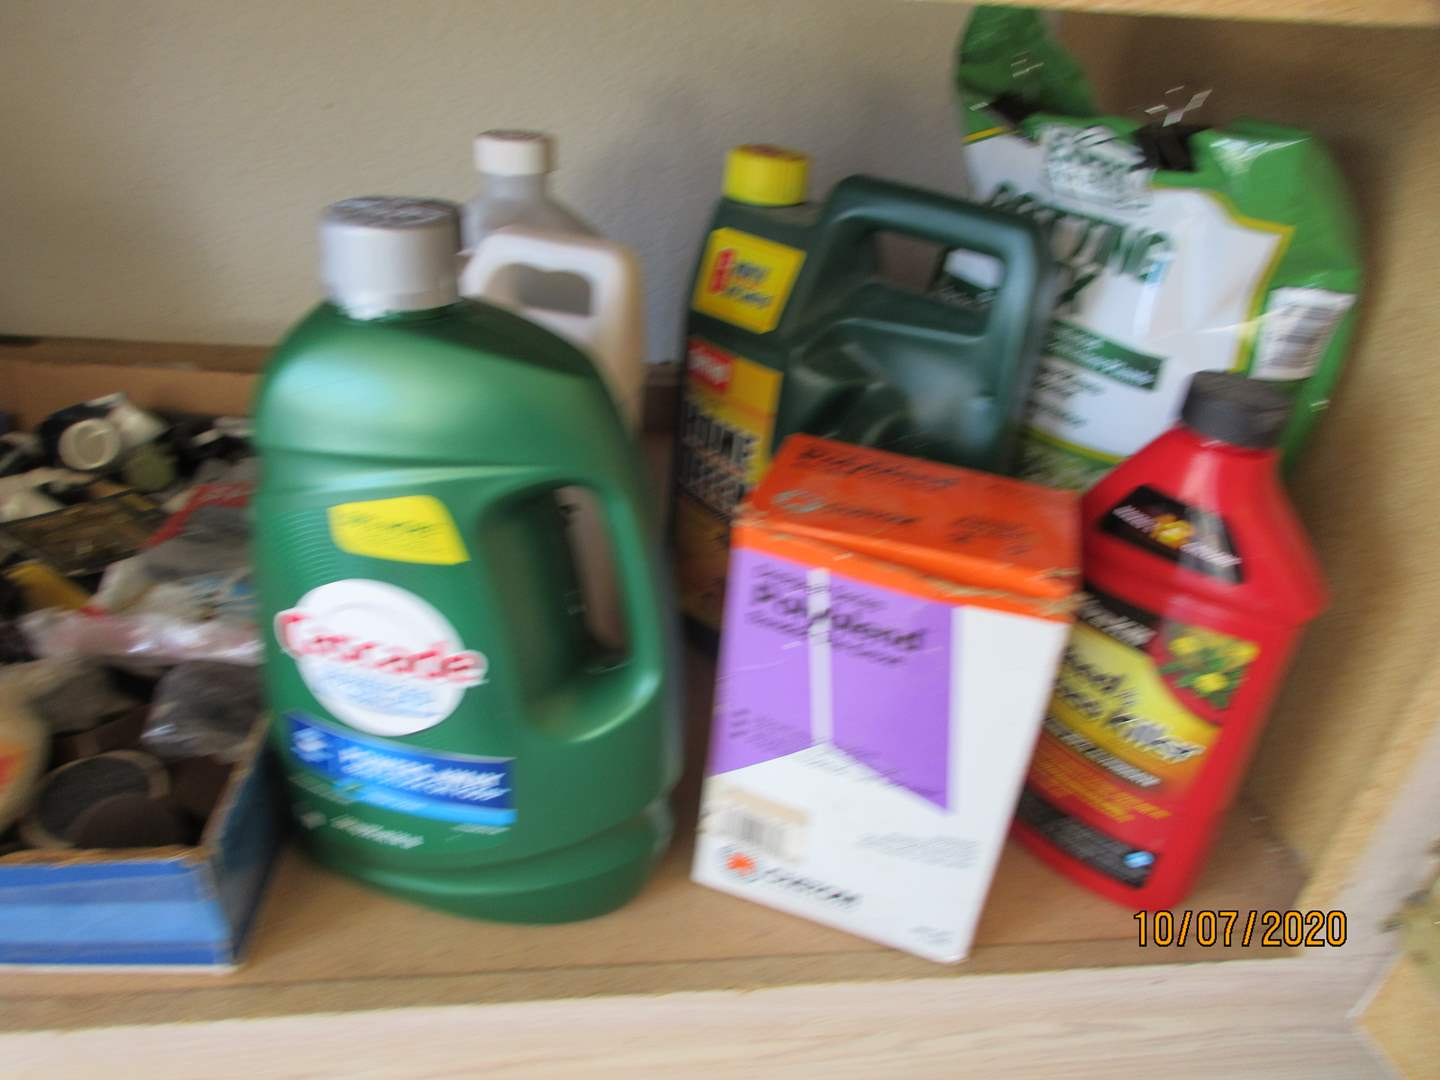 Lot # 151 - Hardware, Plumbing & Electrical Items + Chemicals (main image)